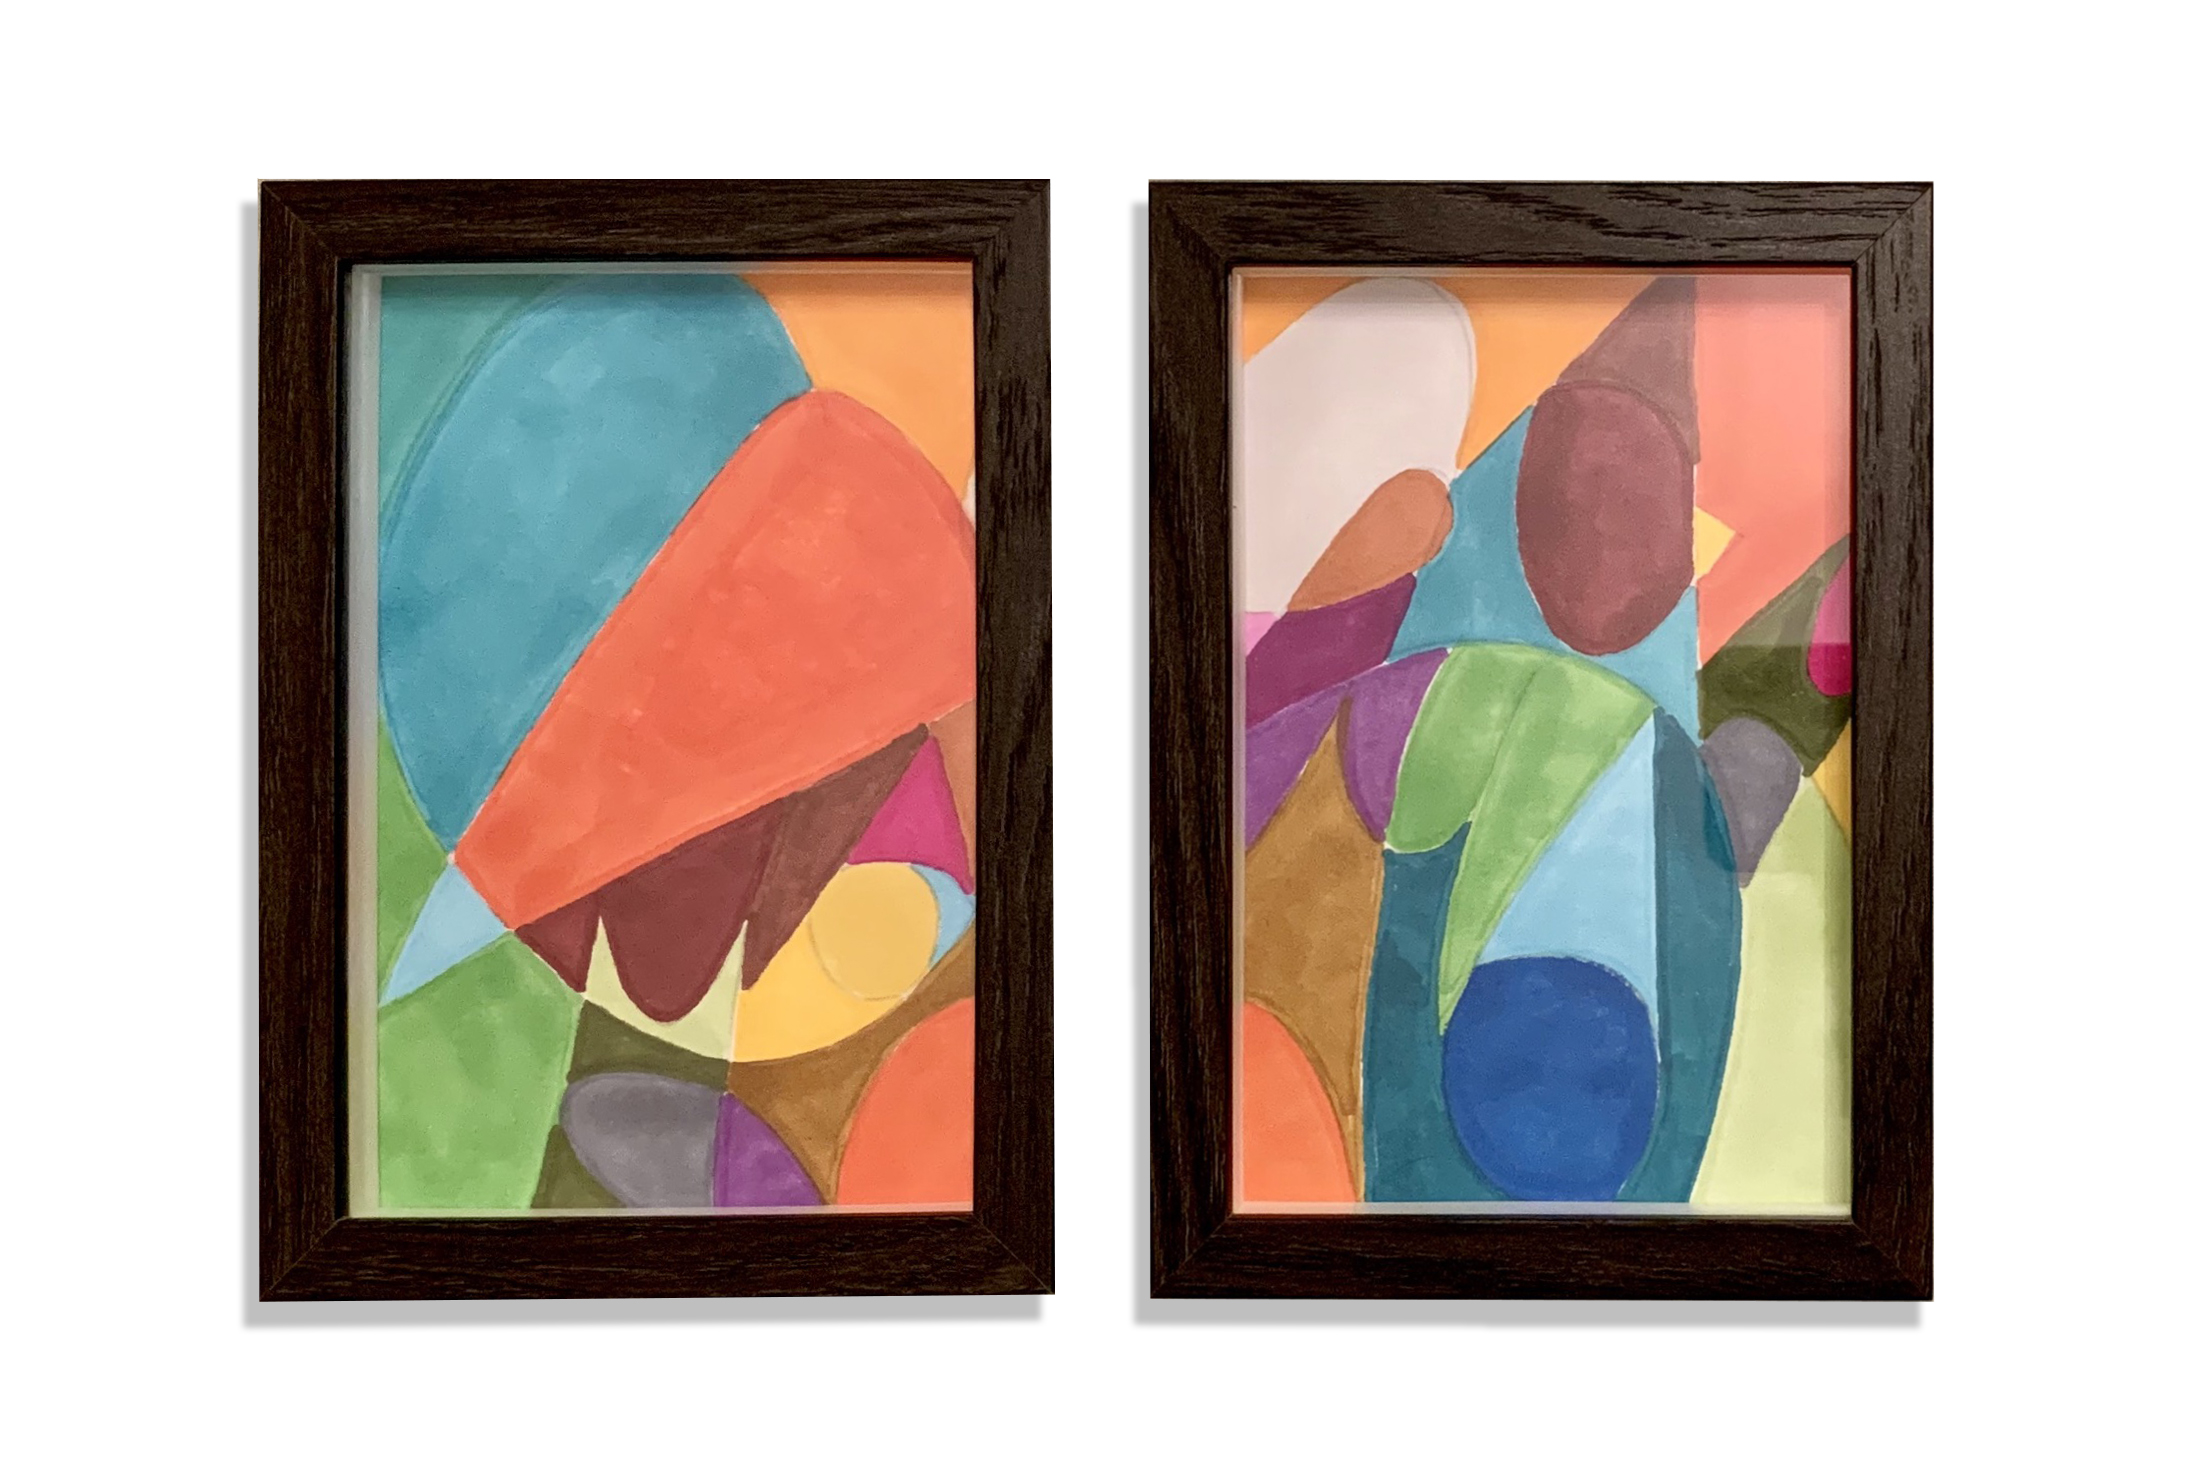 Stavro, Untitled diptych, 2019, Marker on paper, 4 x 6 inches framed each (10.16 x 15.24 cm)